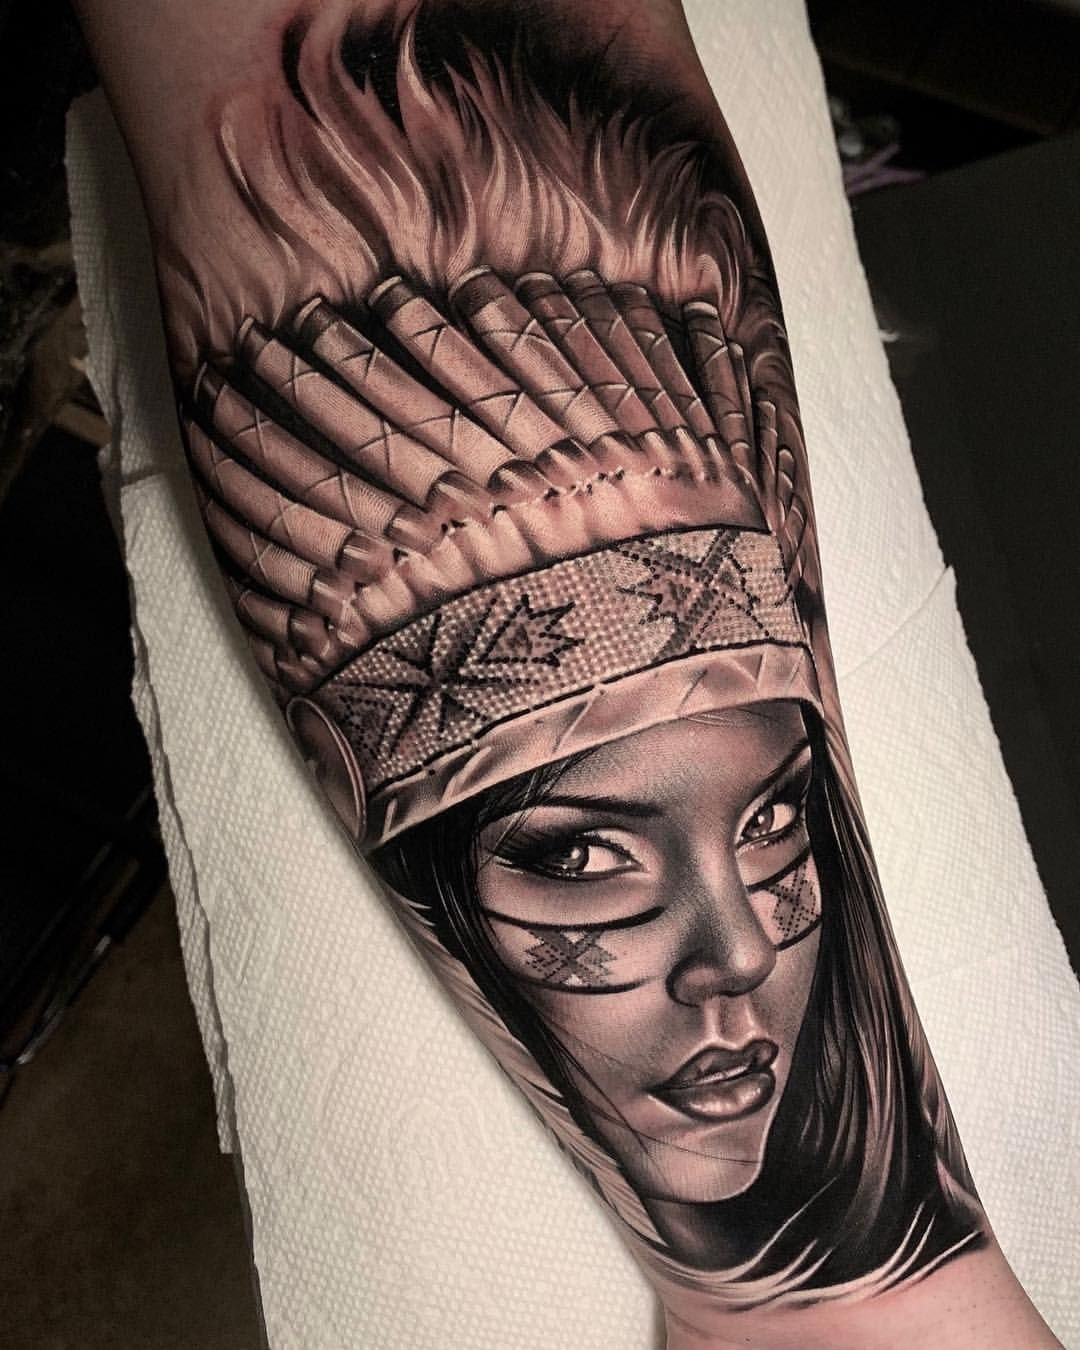 details of a beautiful woman\'s face @Fusion_ink @Fusionink_ca ...